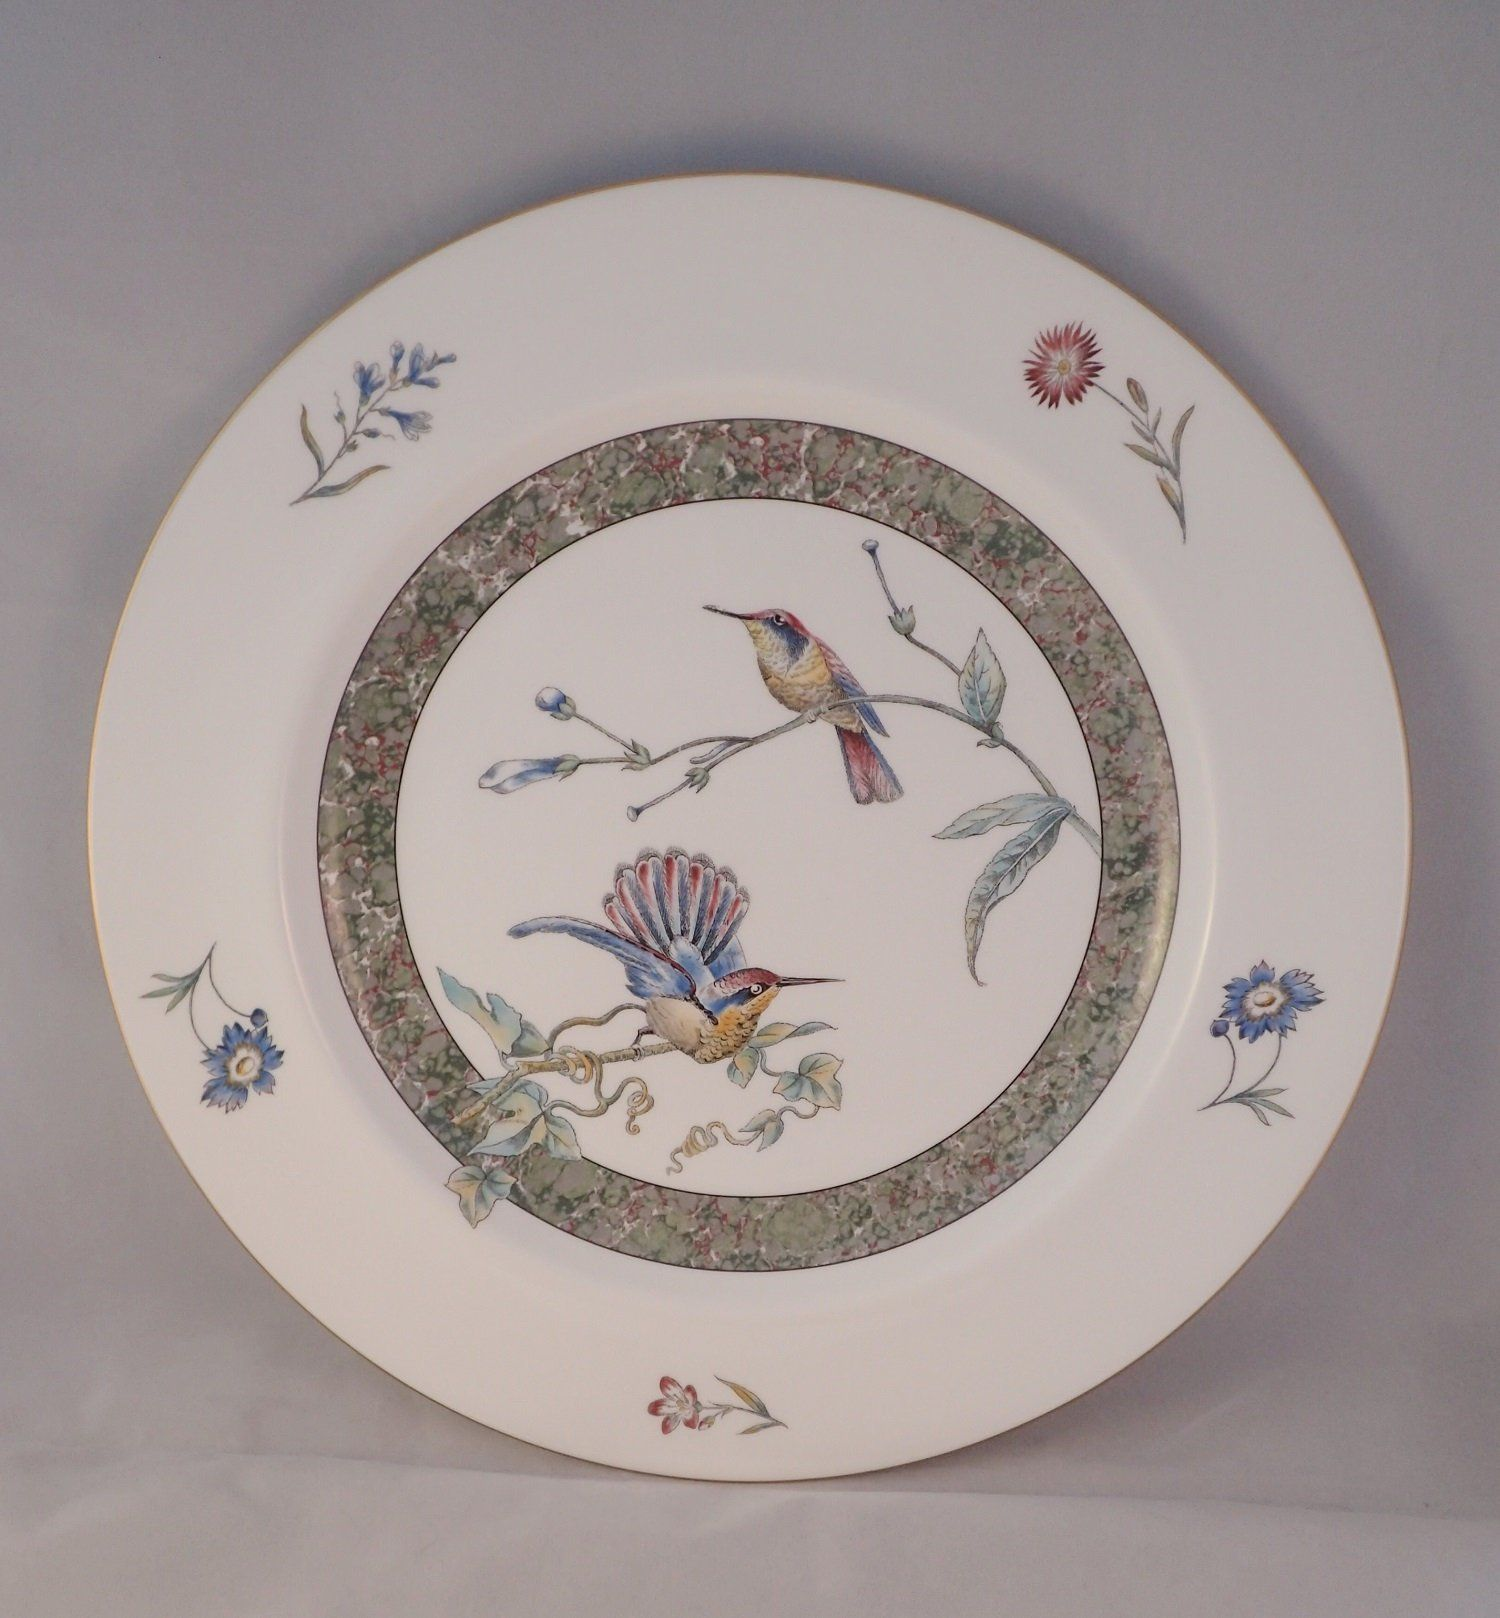 """Wedgwood """"Humming Birds"""" Charger Plate, Round Platter"""